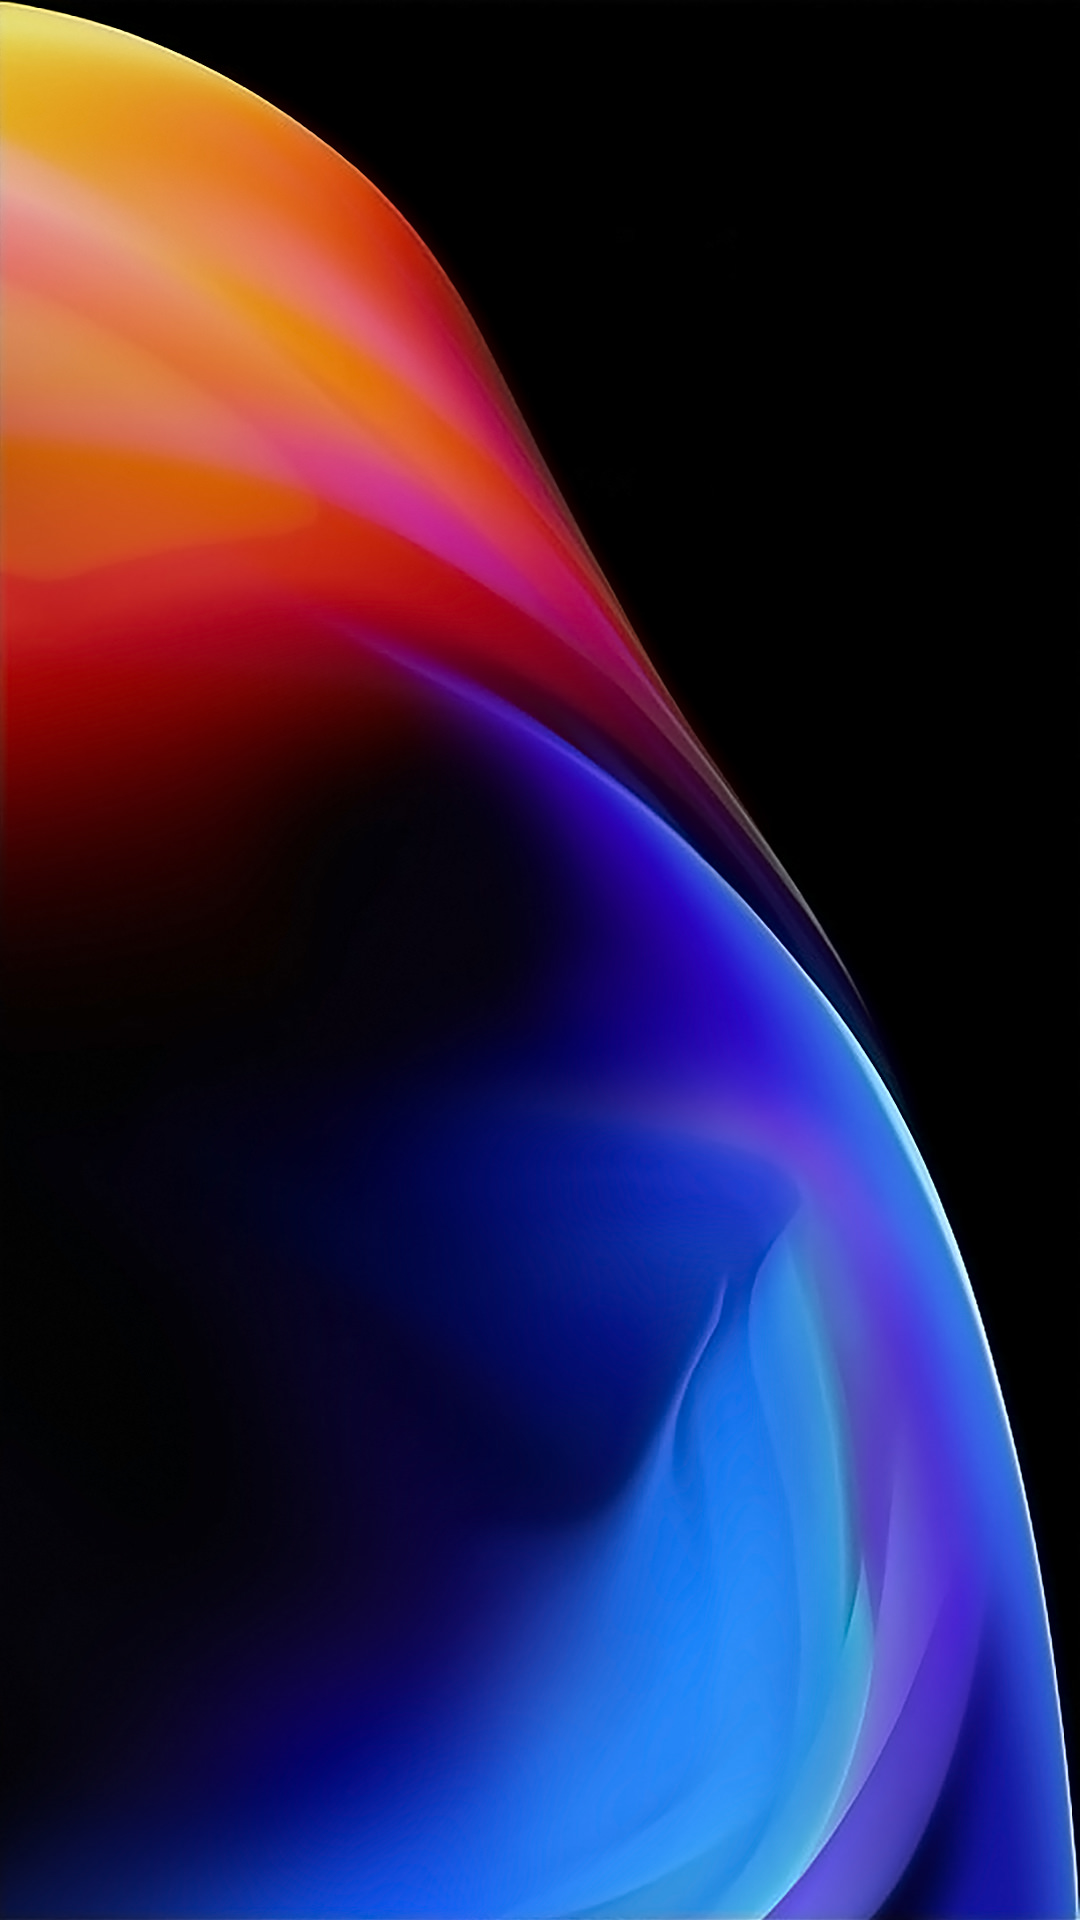 iOS 114 Wallpaper Phone wallpapers 1080x1920